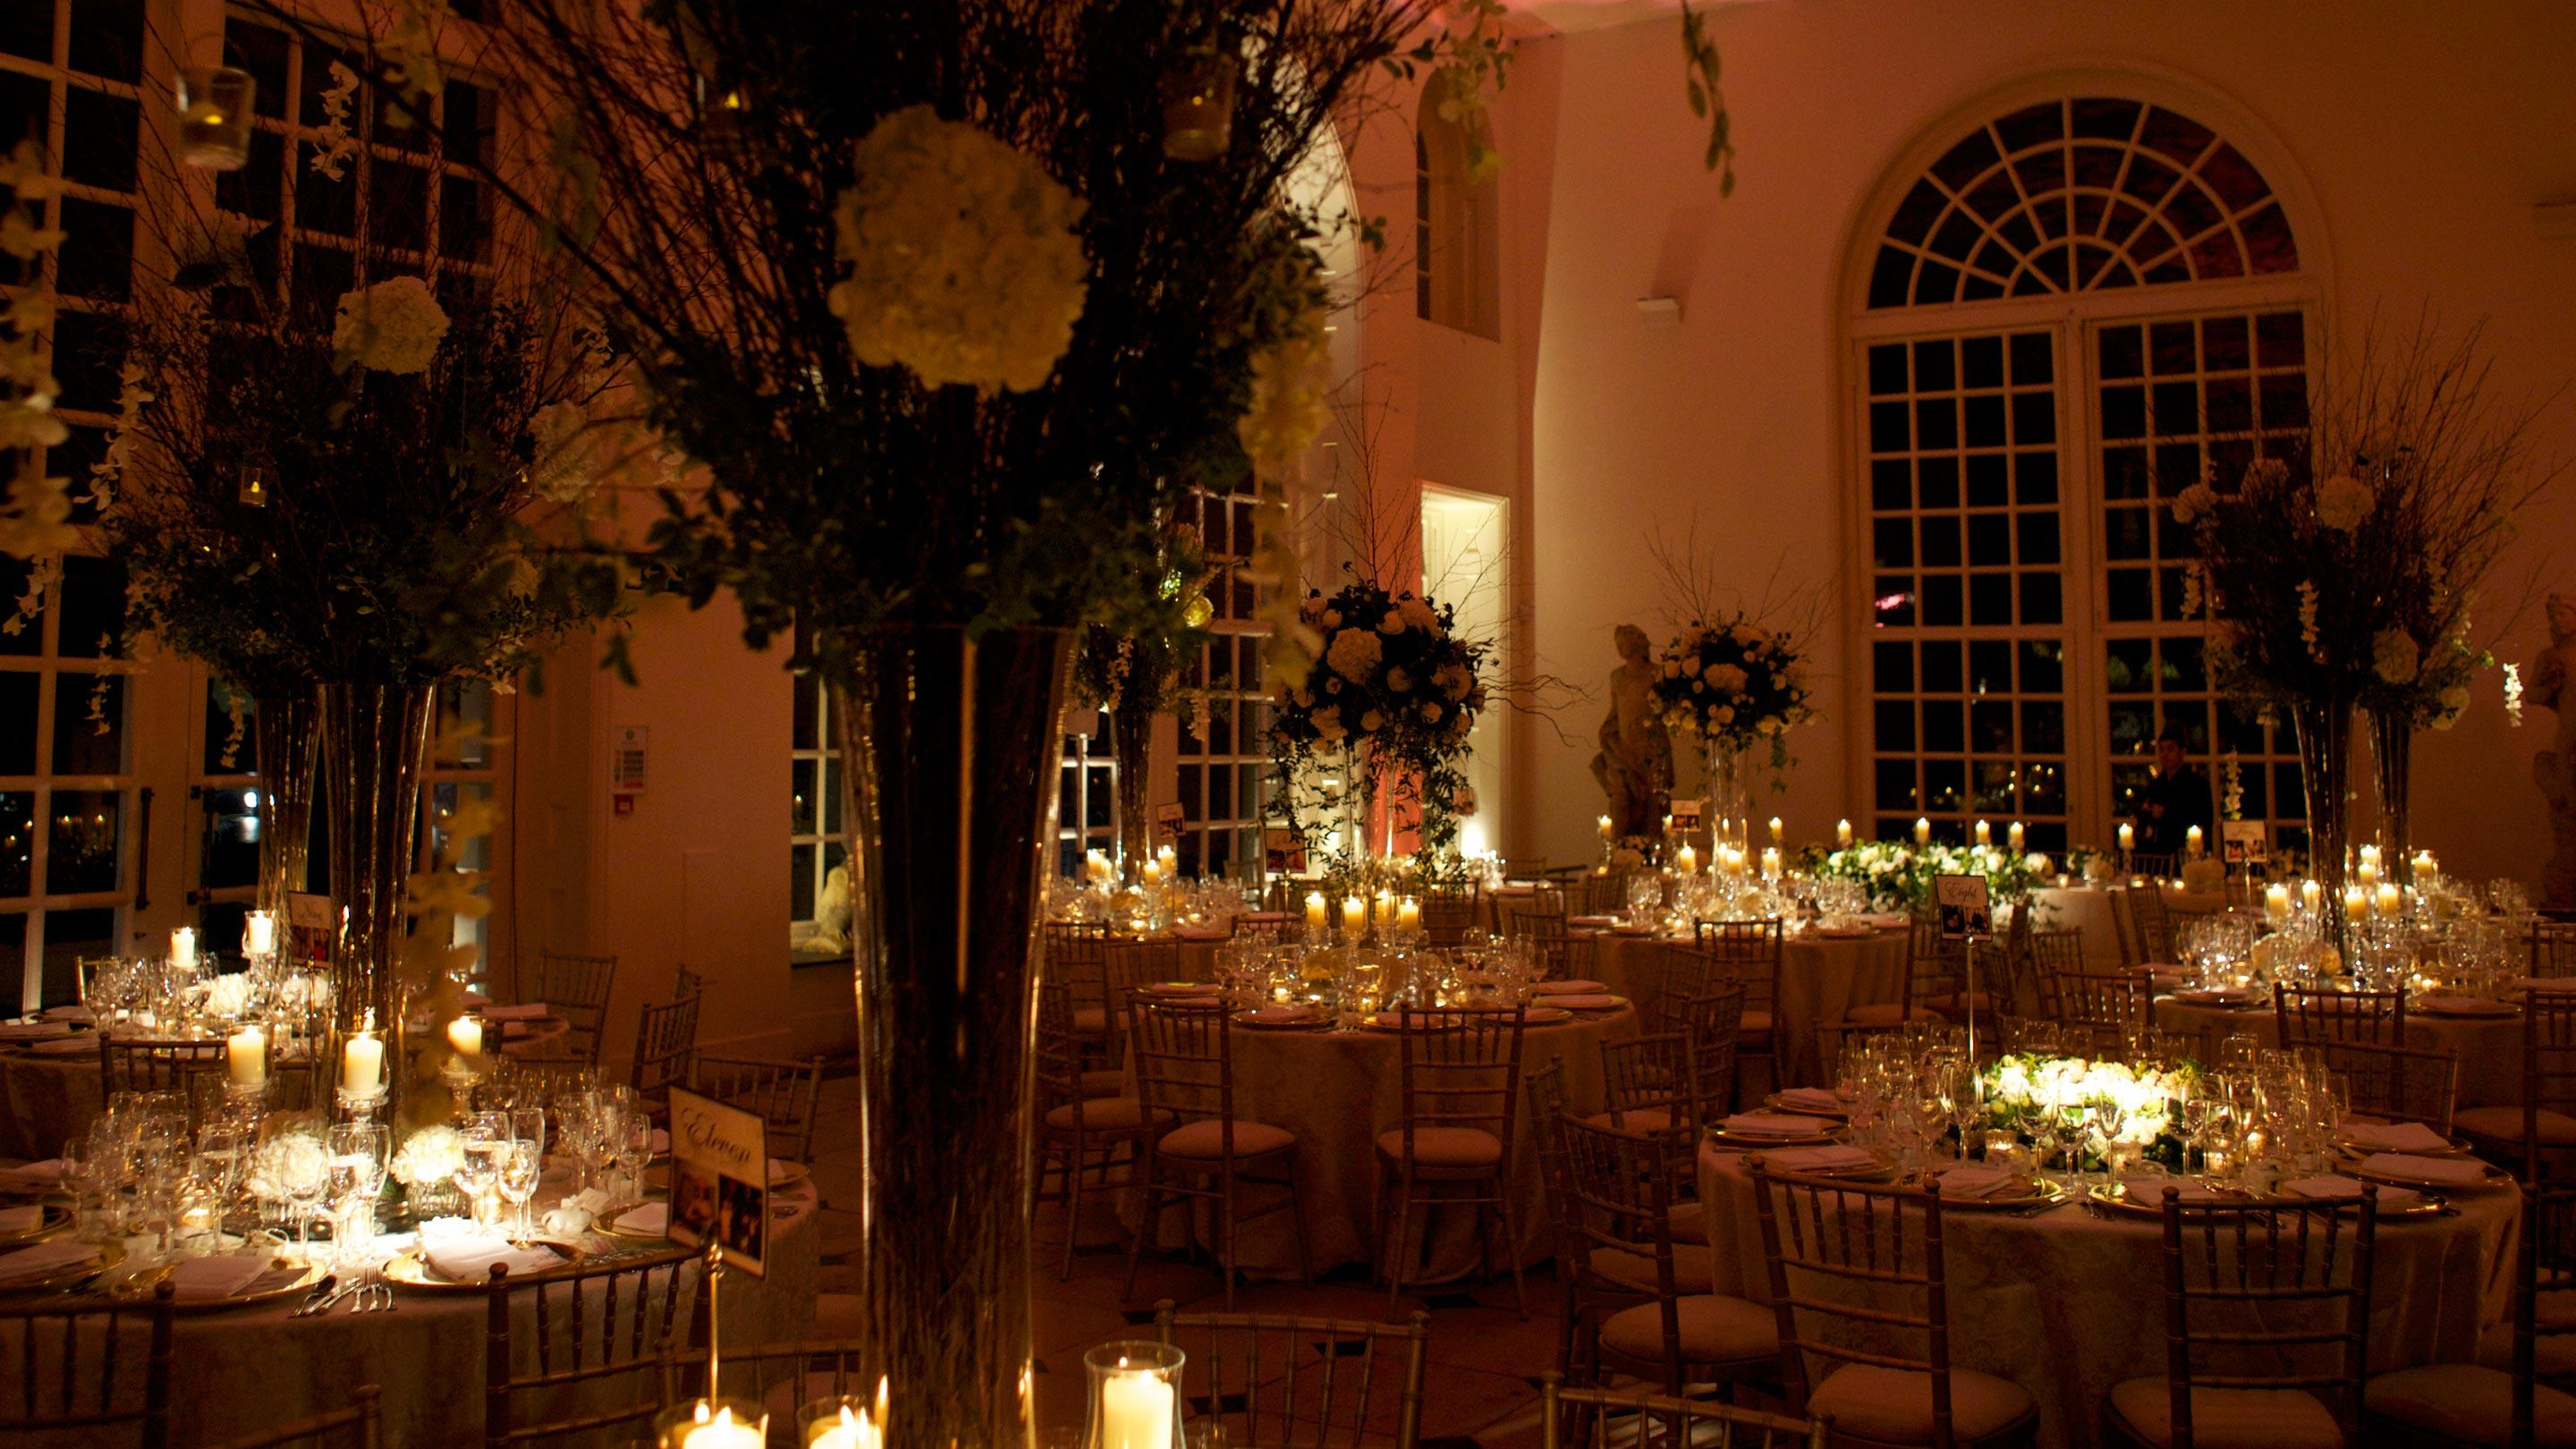 Orangery laid out for an evening wedding reception